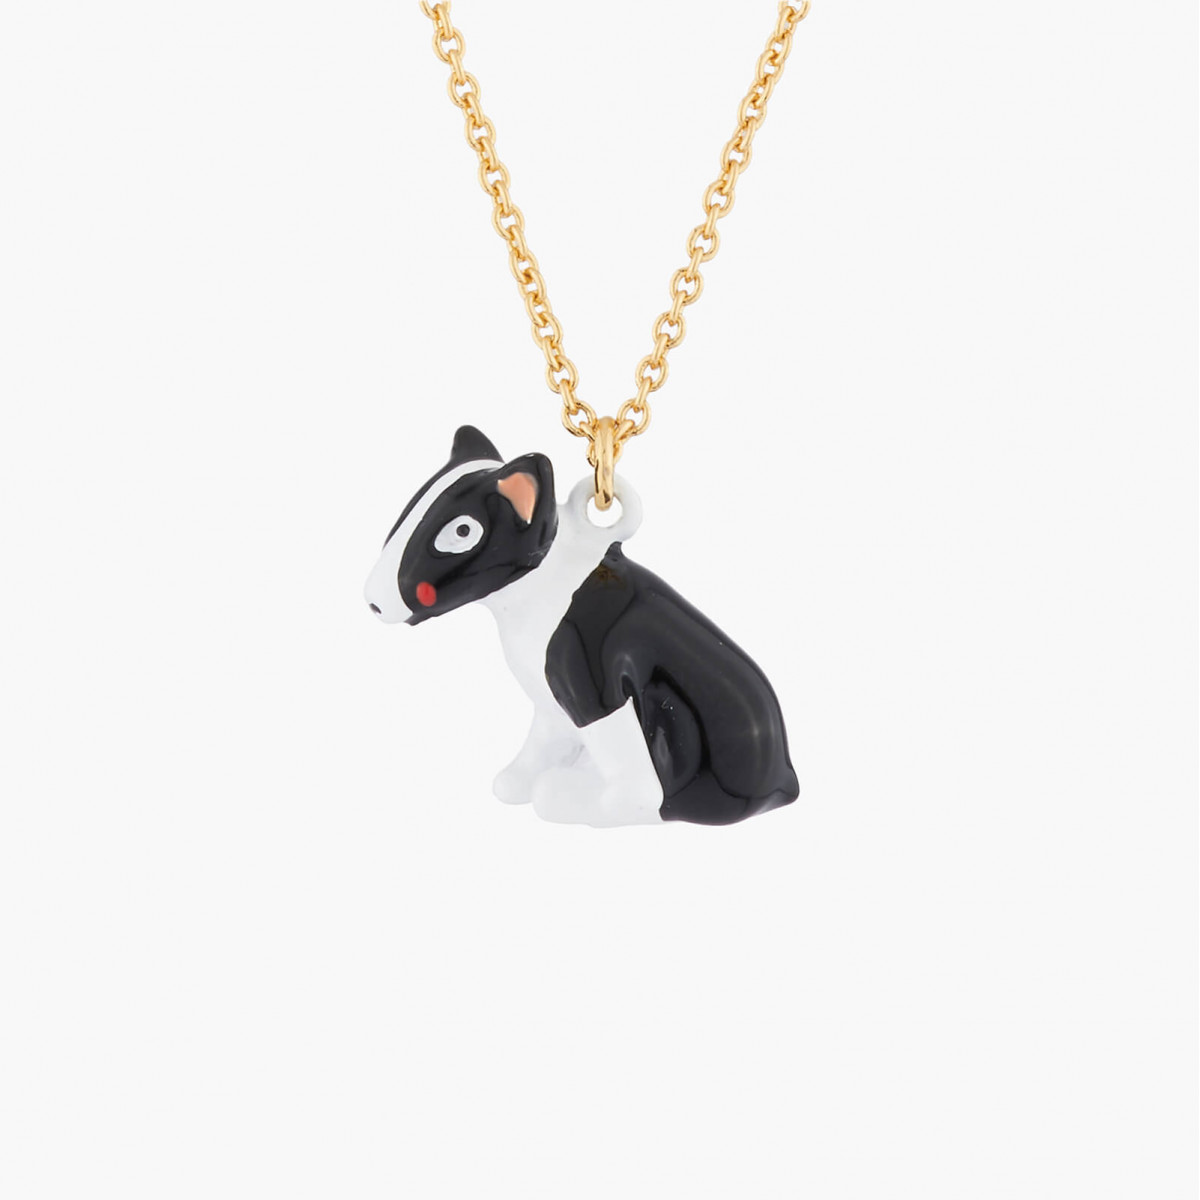 Colliers Collier Pendentif Bull Terrier55,00 € AKNA301/1N2 by Les Néréides